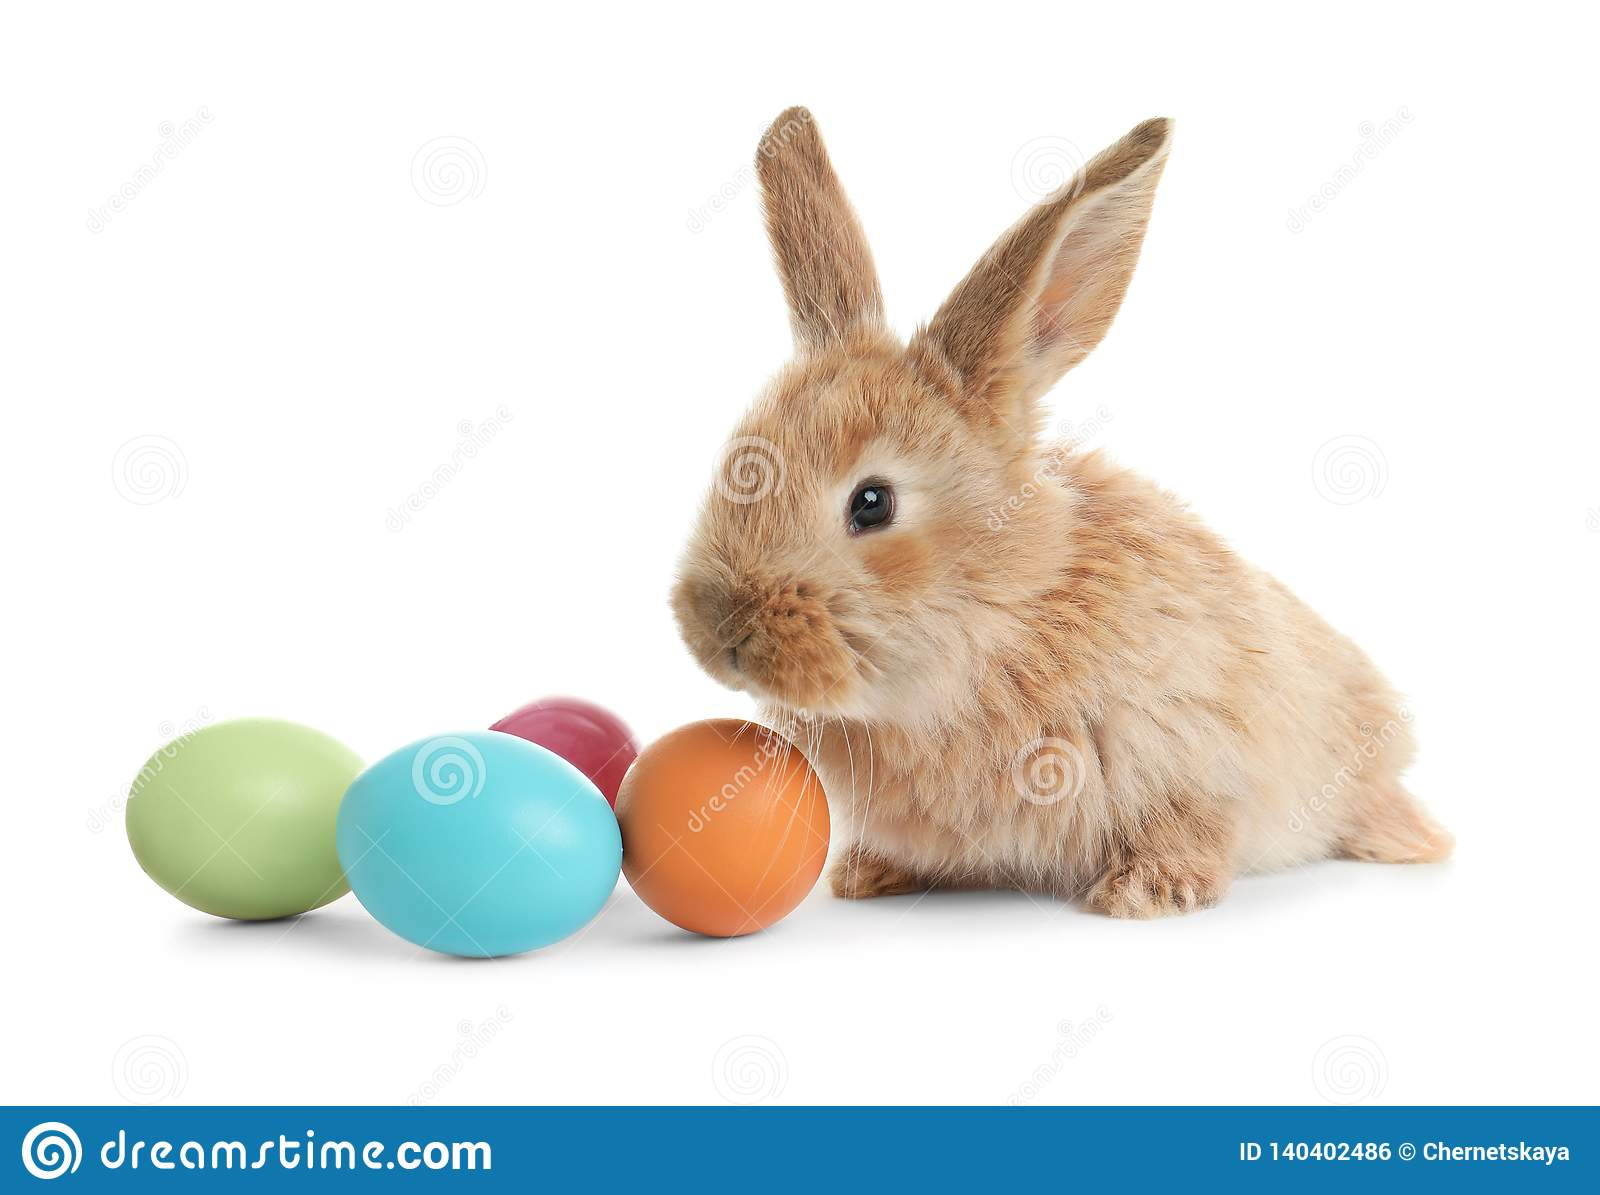 Adorable furry Easter bunny and colorful eggs on white